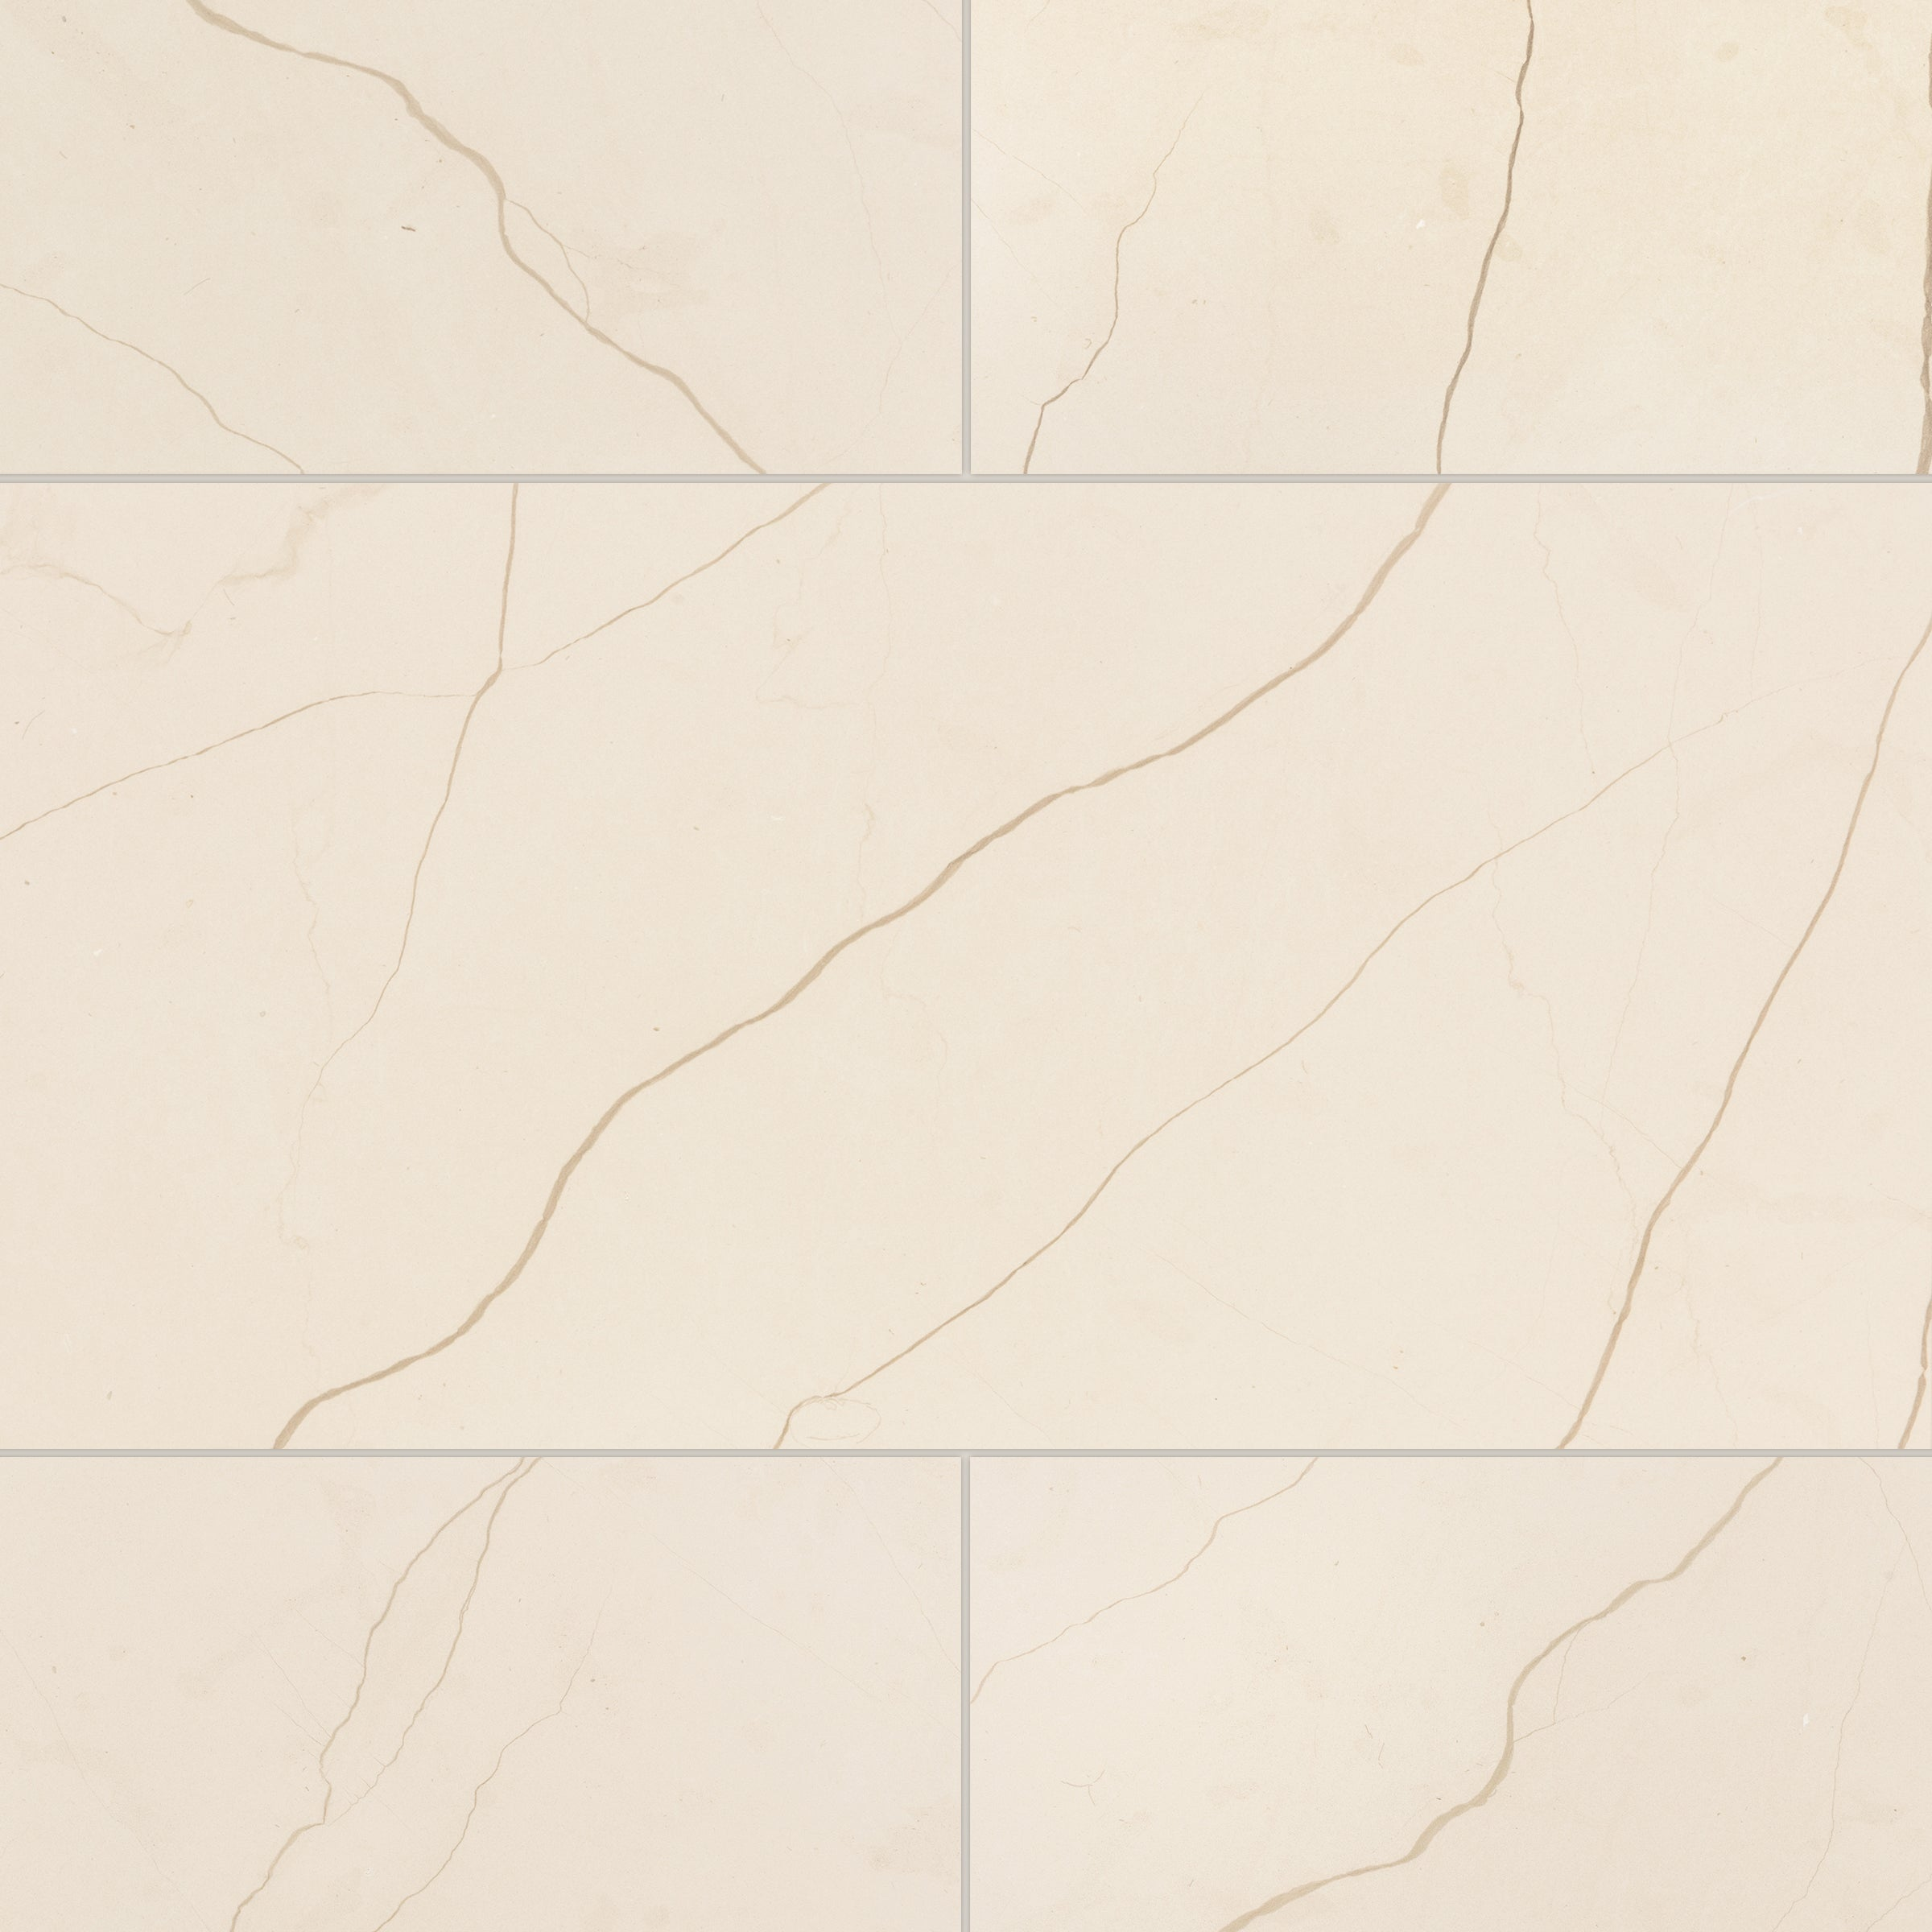 Balkan Beige Limestone Field Tile  Honed 12